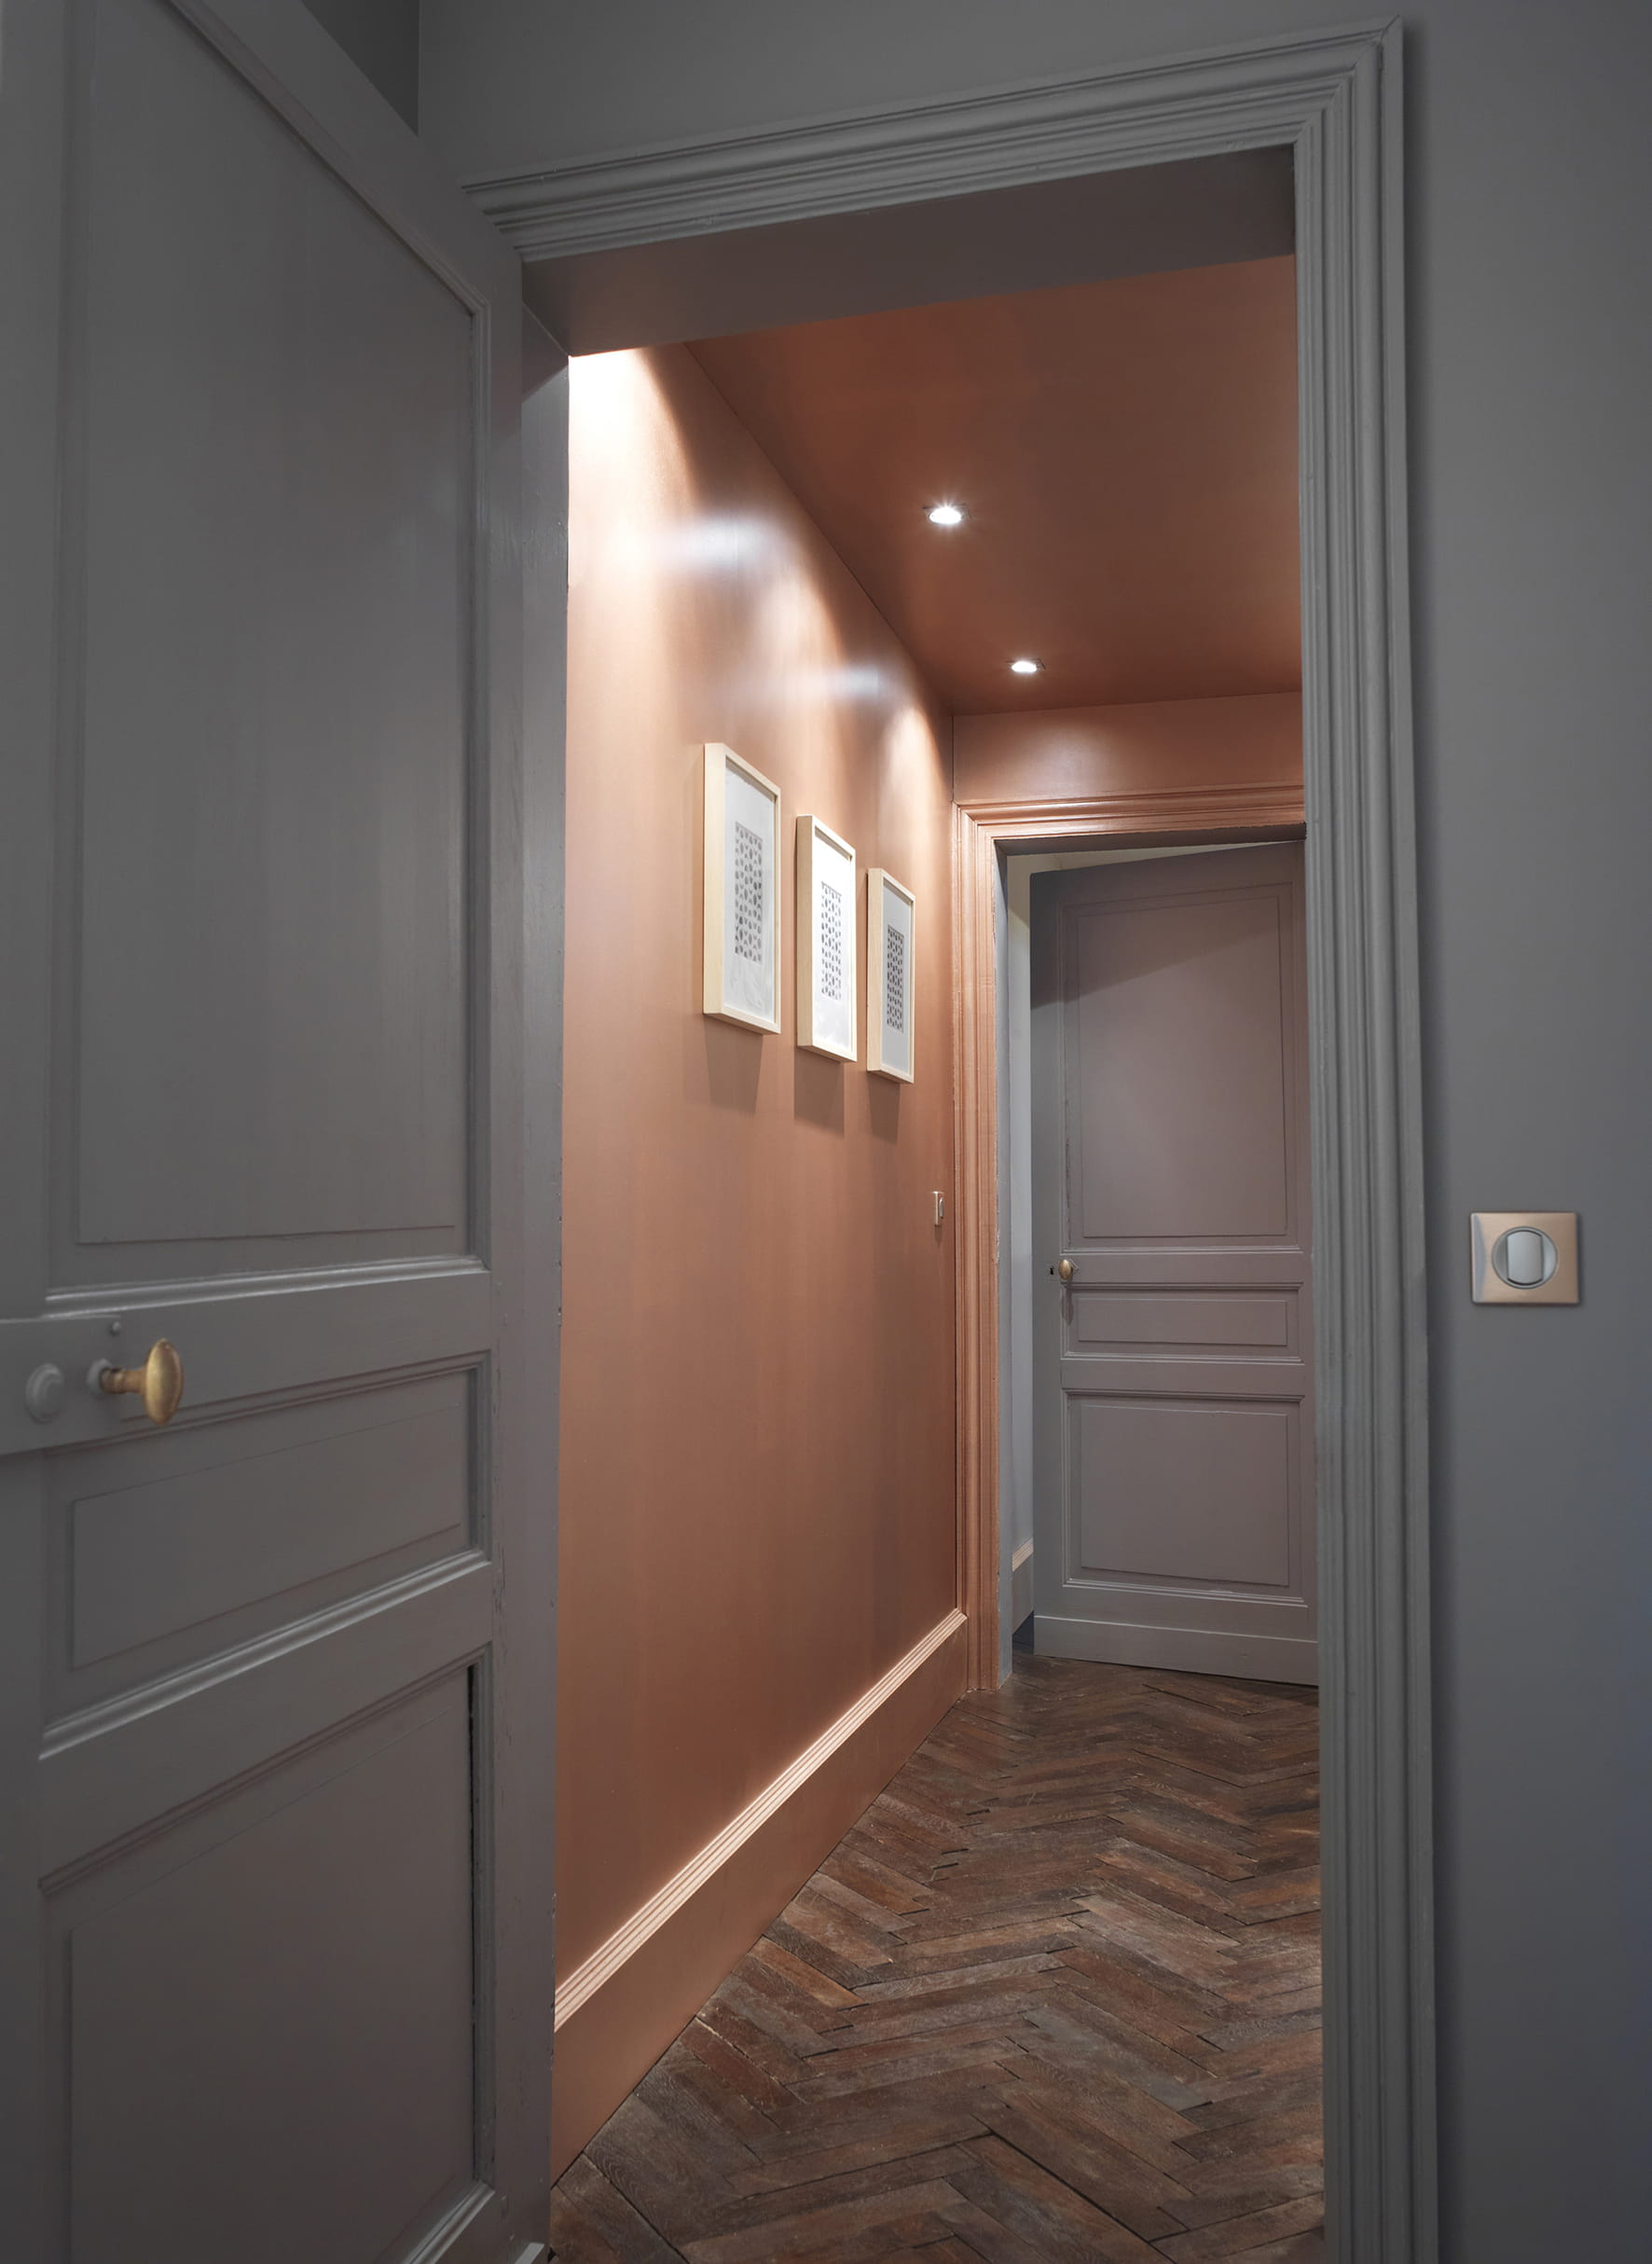 100 Fantastique Suggestions Distance Entre Spot Plafond Couloir